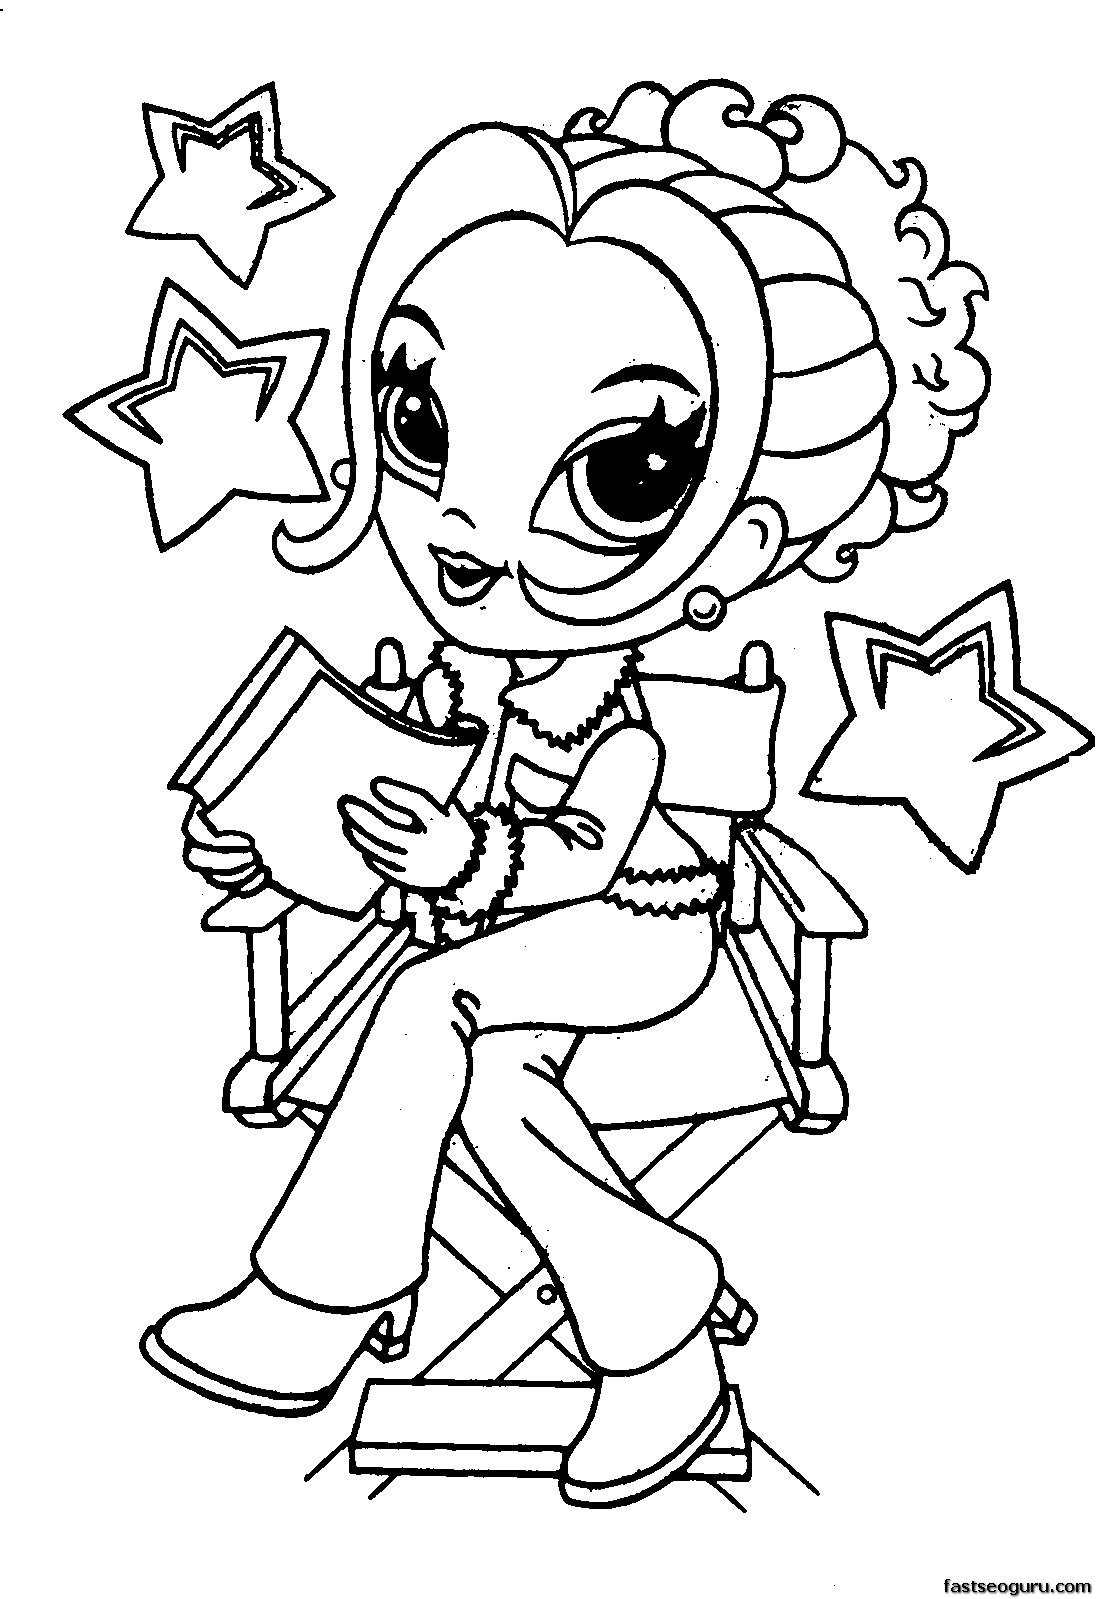 Coloring Pages For Girls 11 And Up Bookmark Elegant Shoes